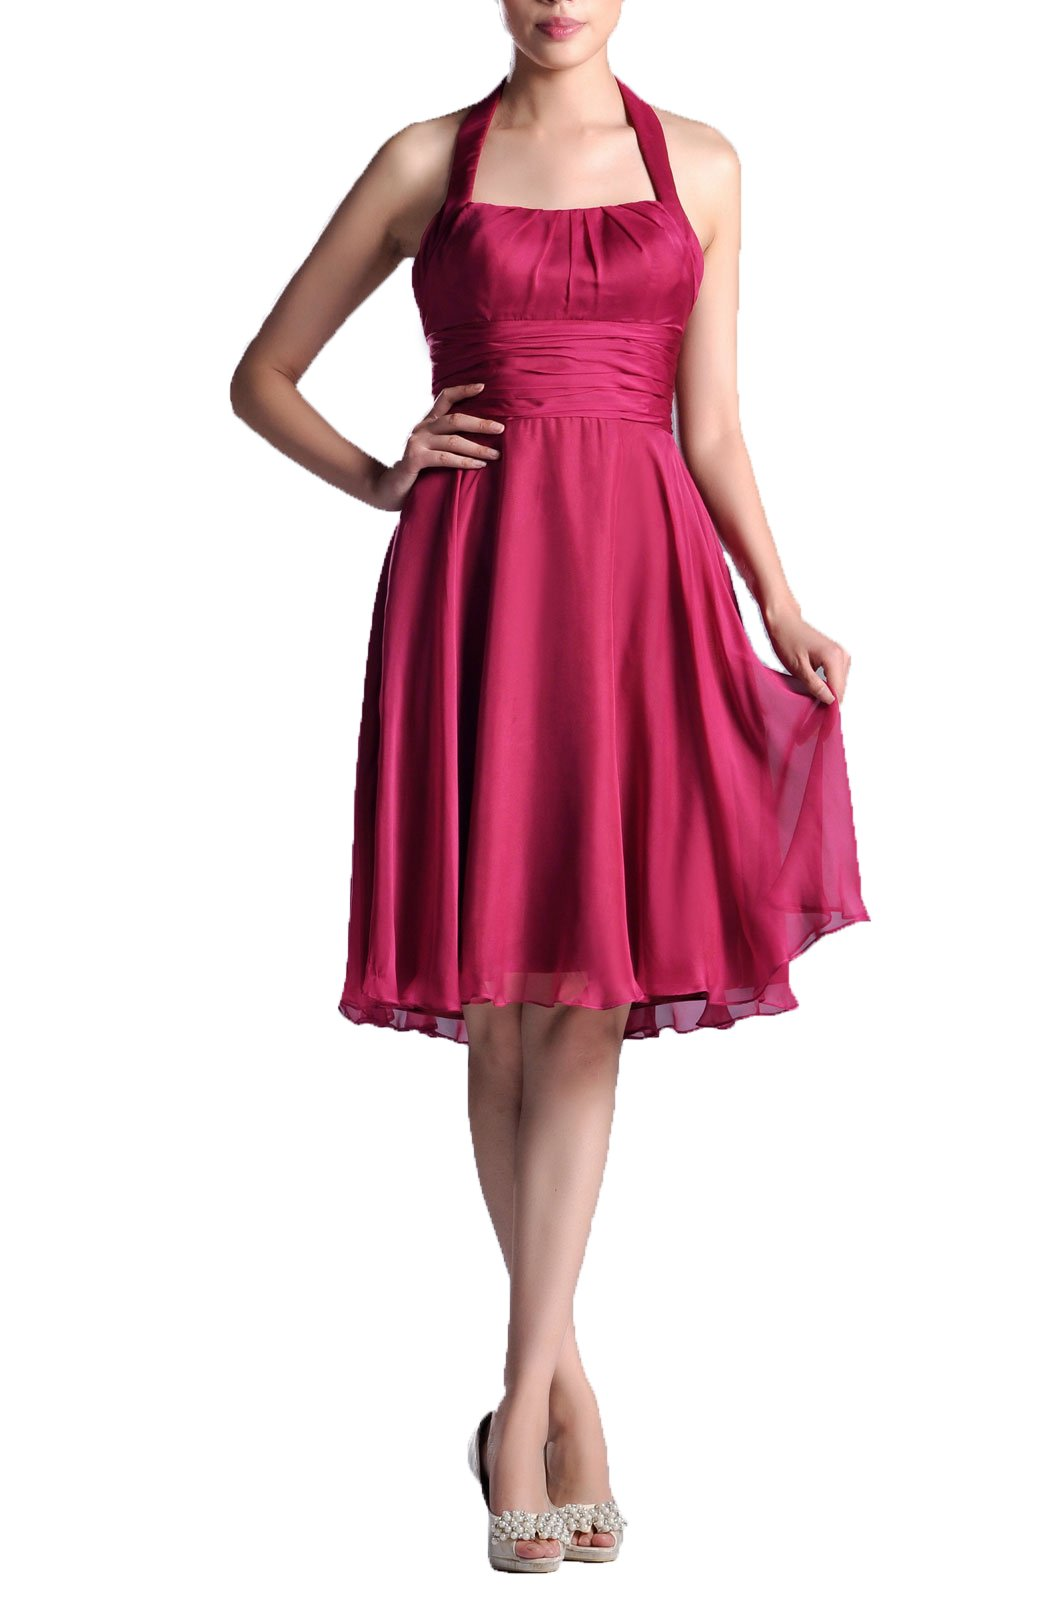 Adorona Natrual Chiffon A-Line Halter Knee Length Special Occasion Bridesmaid Dress, Color Sage,Customized by Adorona